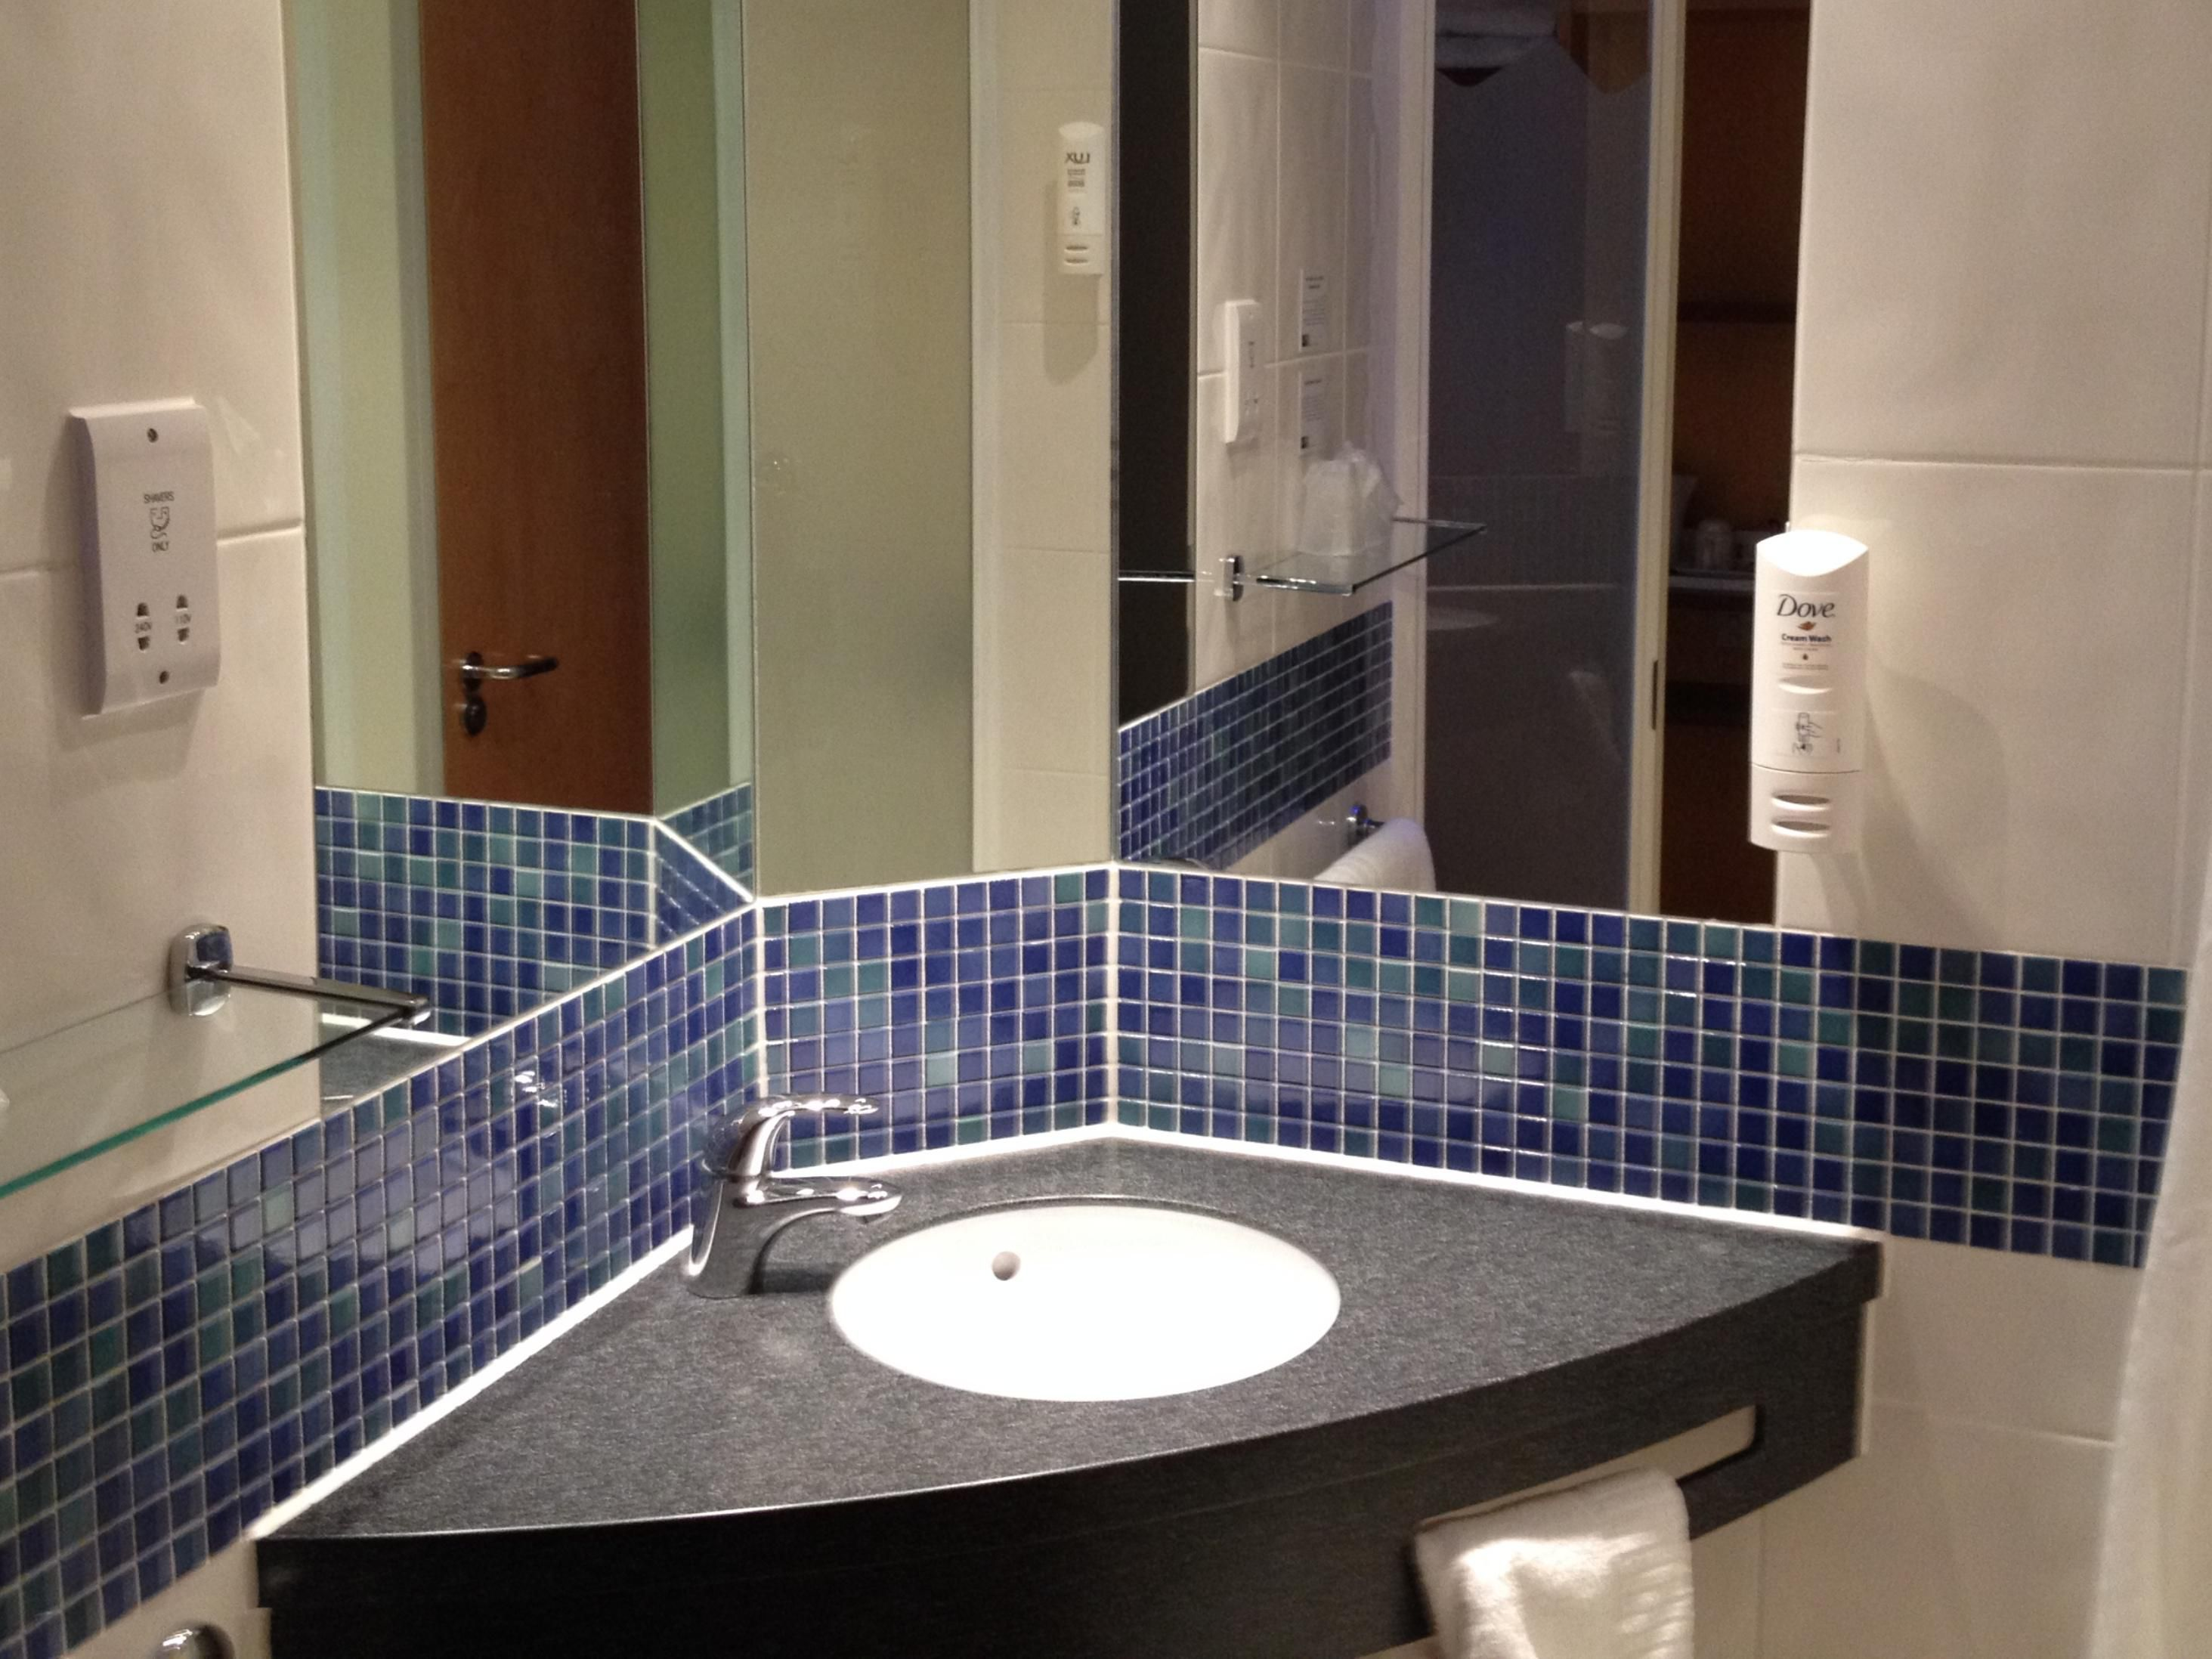 A guest bathroom featuring the sink area